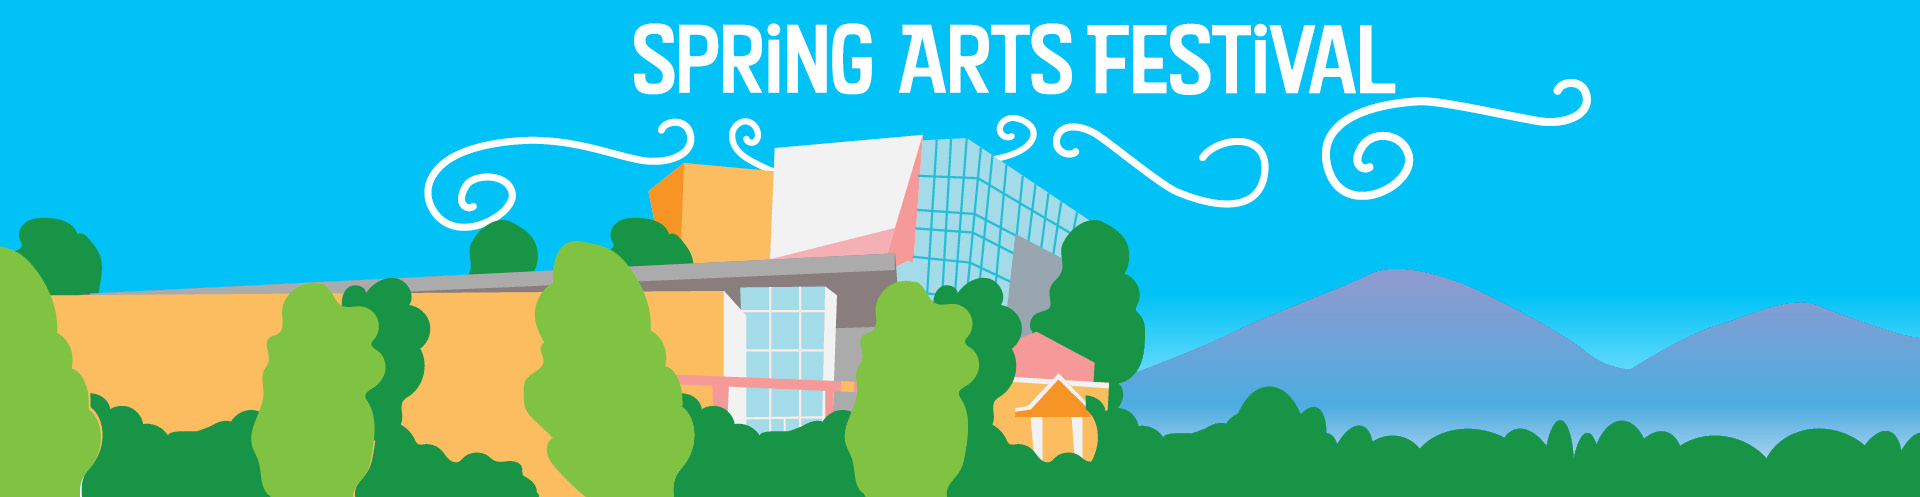 Spring Arts Festival Graphic Banner